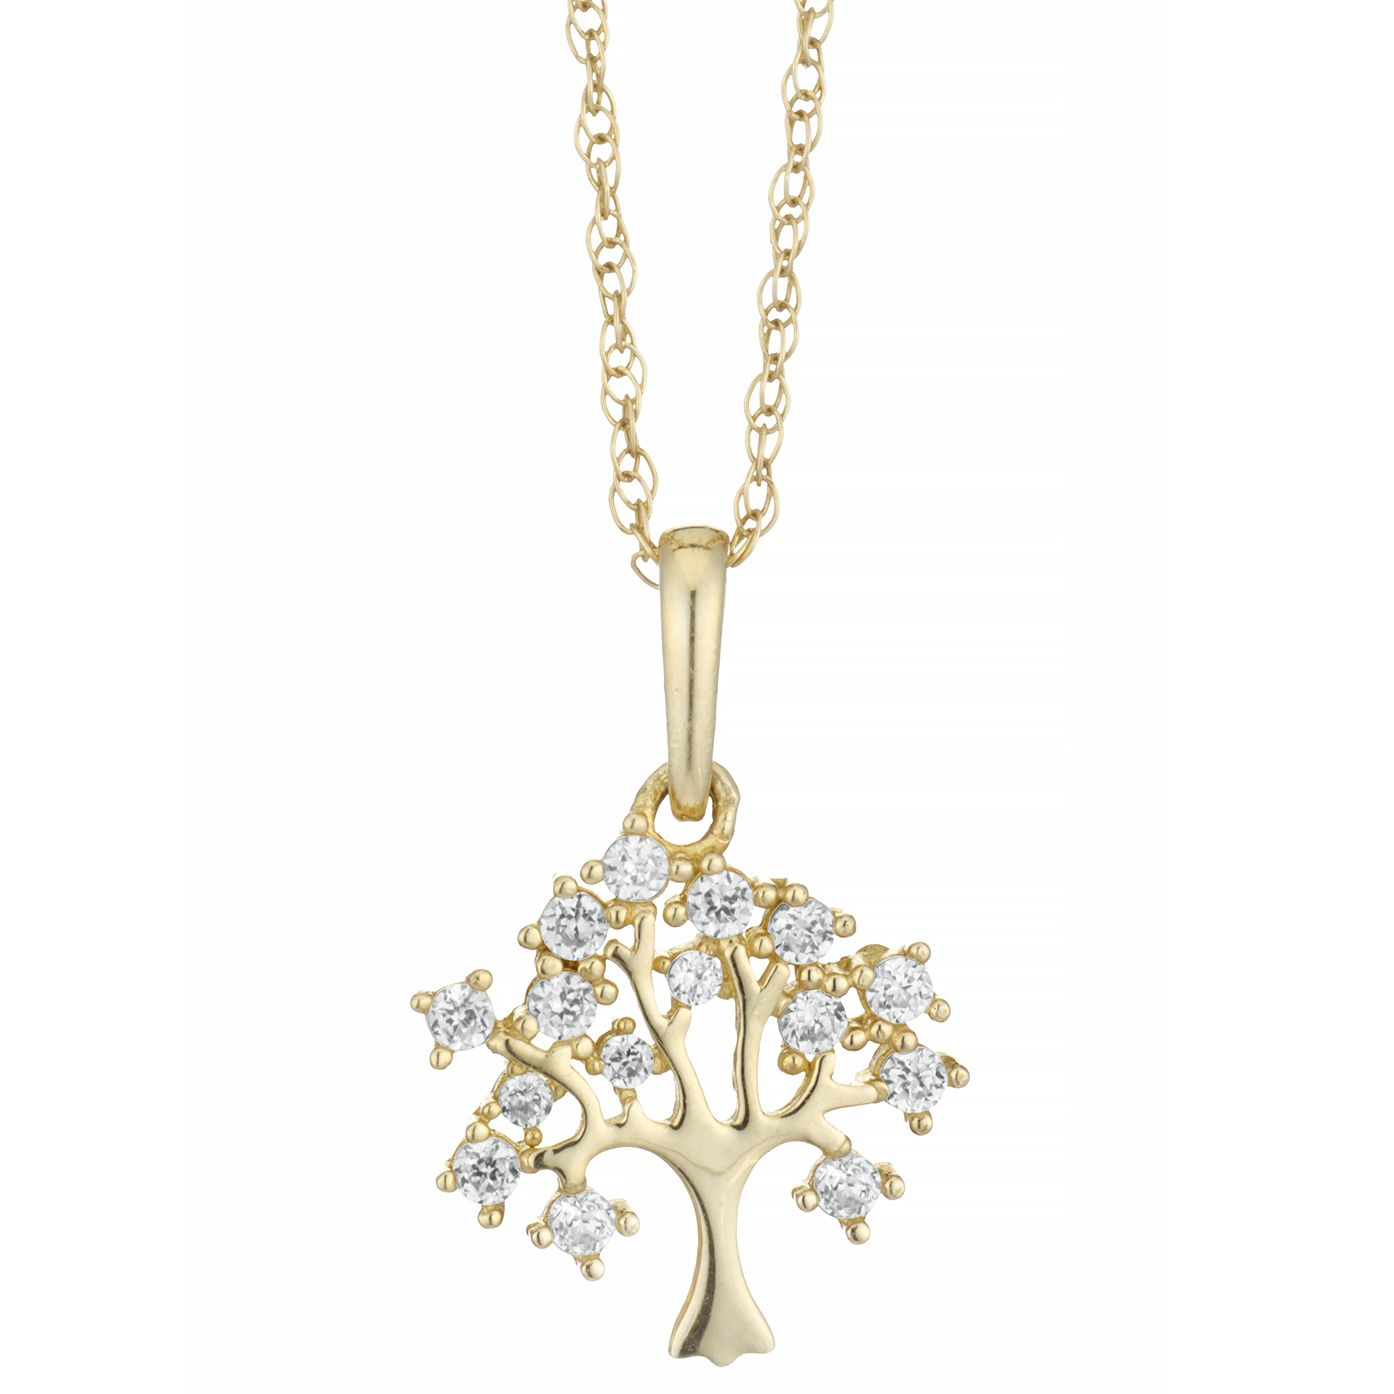 9ct Yellow Gold Cubic Zirconia Tree of Life Design Pendant - Product number 4026063